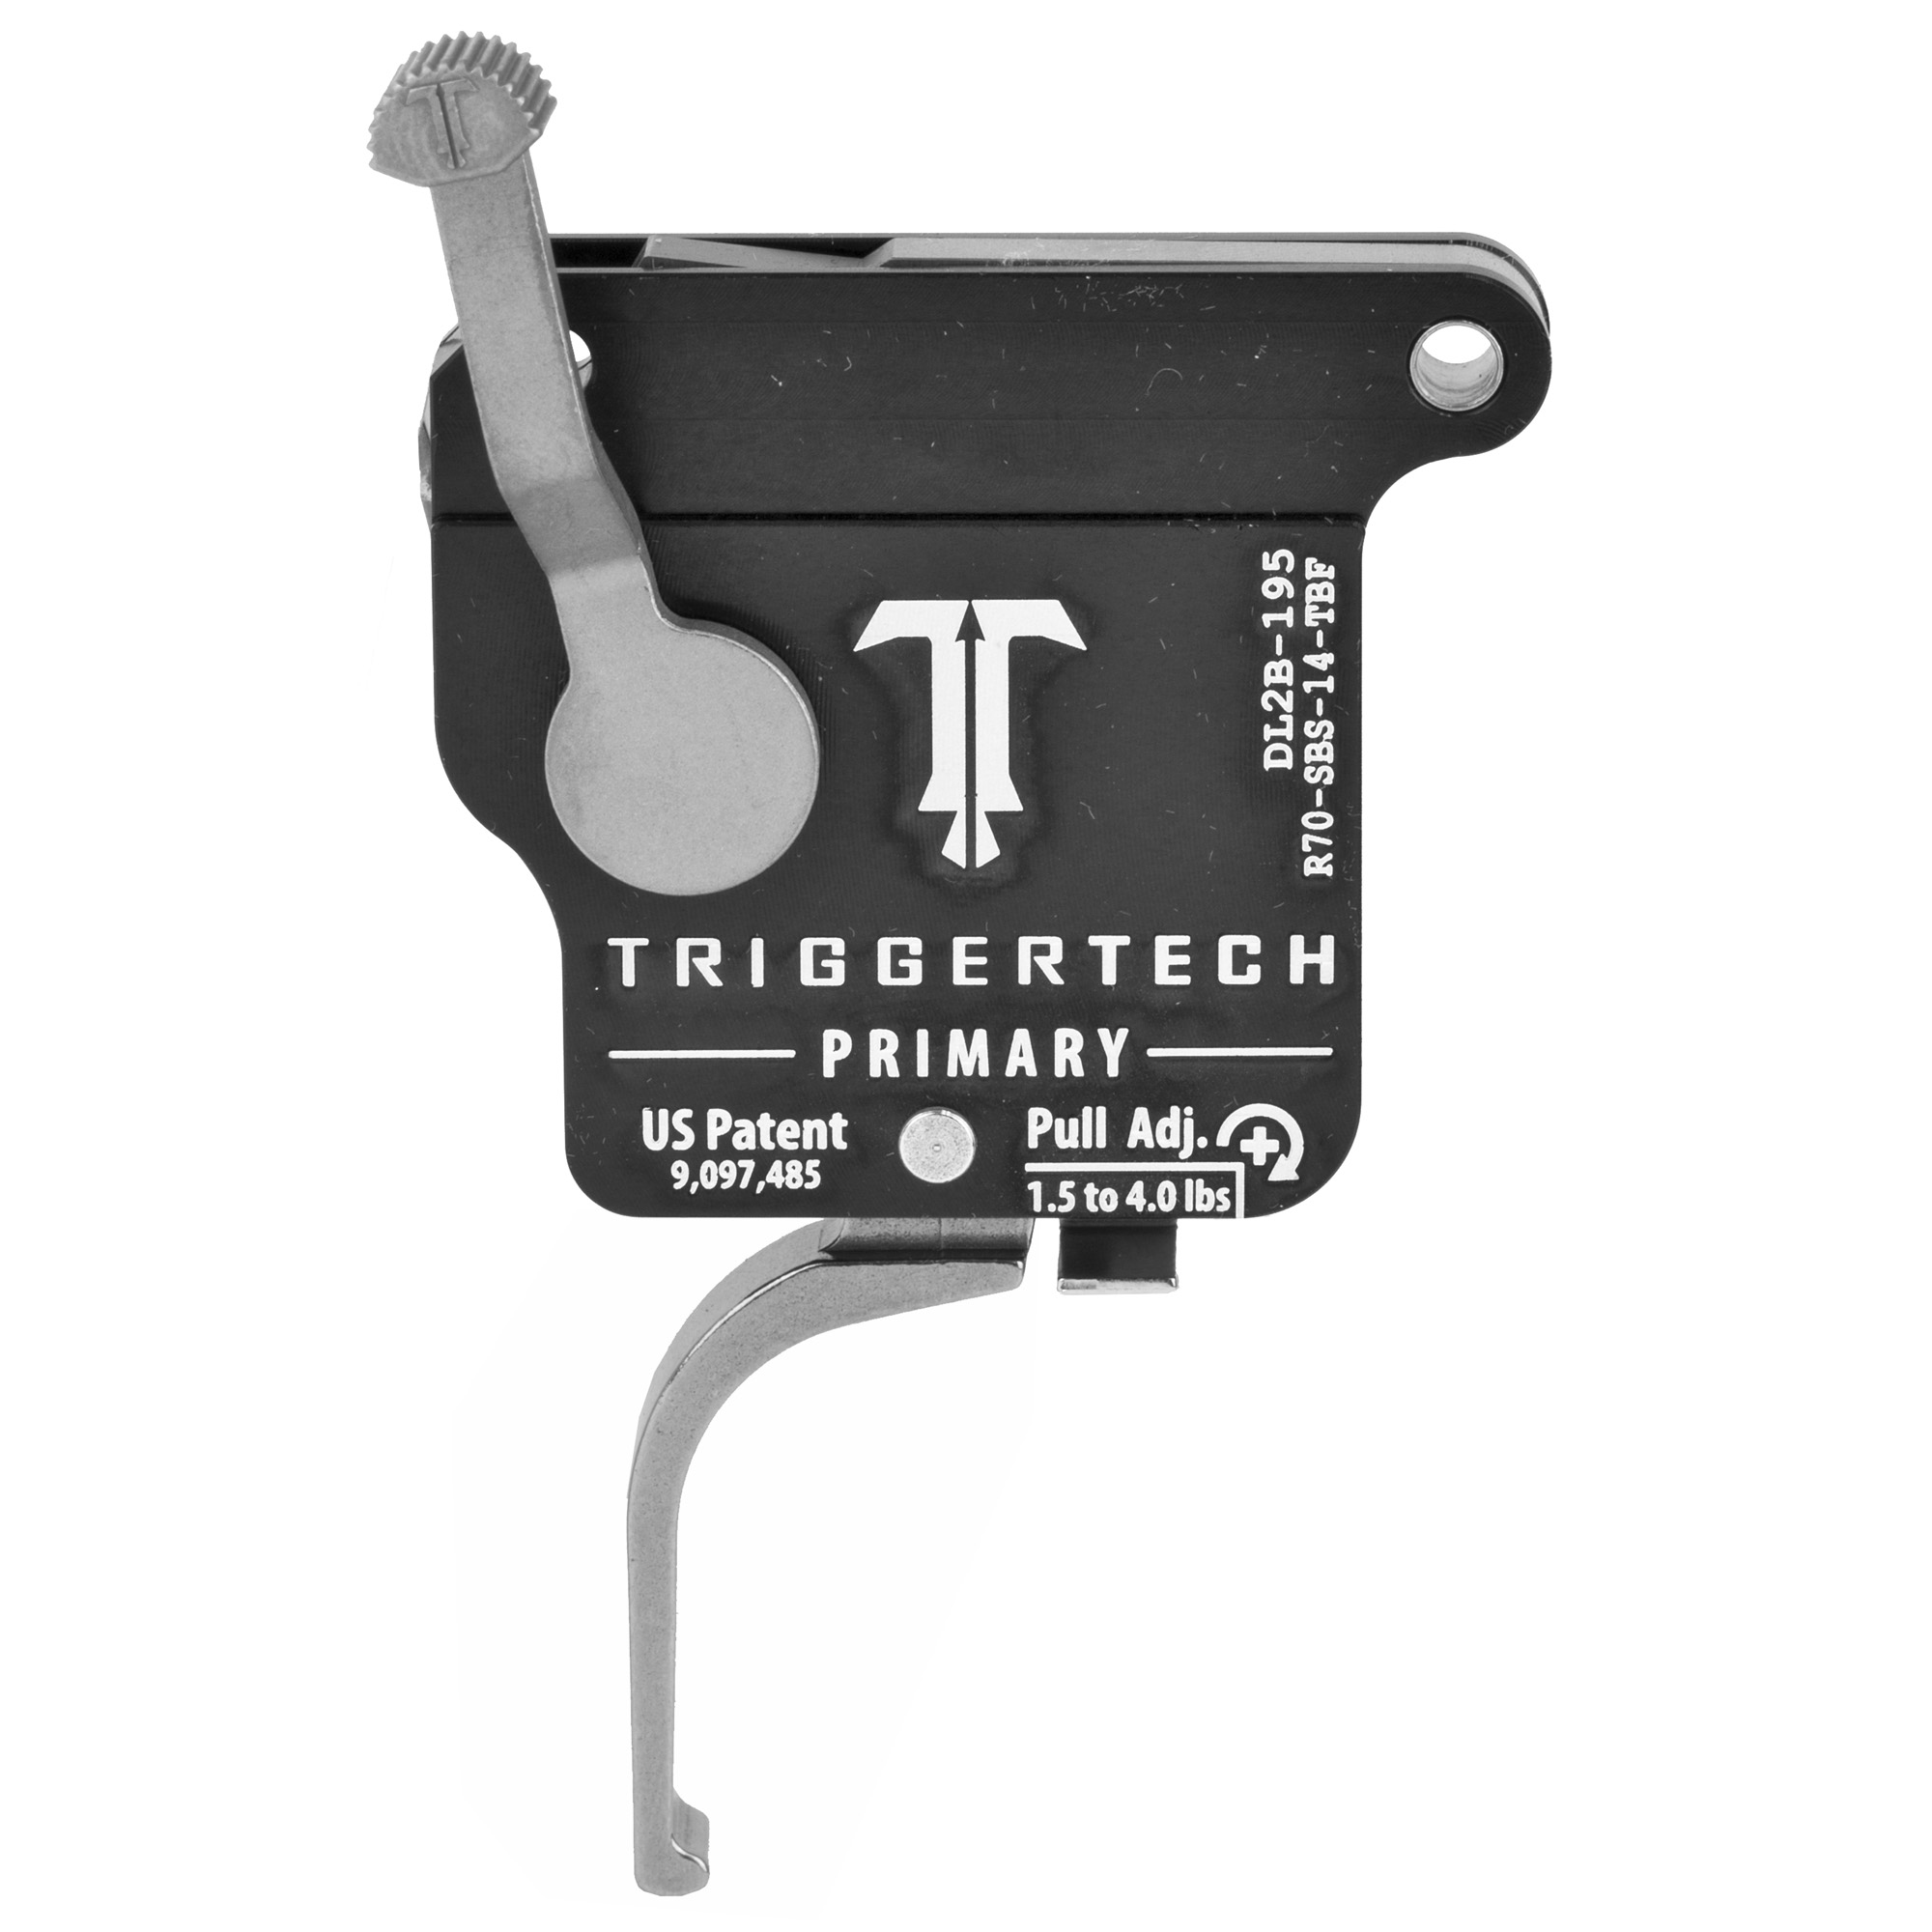 """The Rem 700 Primary is the ideal upgrade to improve accuracy and precision on any right-handed Remington 700 model rifle. Featuring TriggerTech's Frictionless Release Technology"""" this drop-in trigger provides a true zero-creep break"""" extremely short over-travel and offers outstanding reliability"""" even in the harshest environments. Utilizing CLKR Technology"""" the pull weight is quickly and confidently adjusted from 1.5 - 4.0 lbs. in 1oz increments from an externally accessible set screw. Due to the exceptionally crisp break"""" most shooters report the pull weights feeling 0.5lbs lighter than a friction based trigger of the same measured pull weight."""